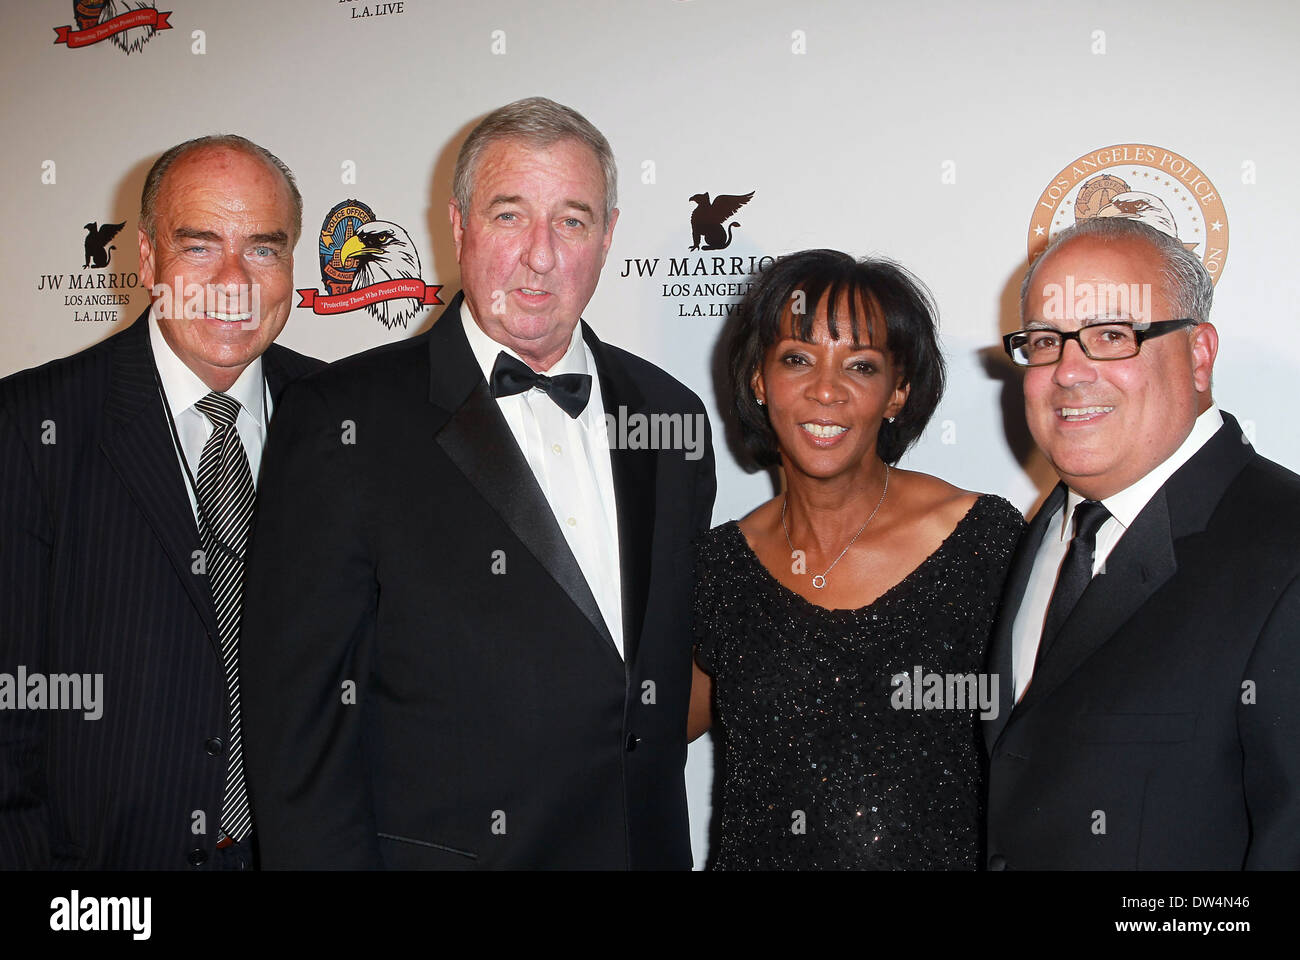 Arthur Cassell, LA County DA Steve Cooley, Jackie Lacey, Peter R. Repovich Los Angeles Police Protective League's 11th Anniversary Eagle & Badge Foundation Gala at the JW Marriott Los Angeles, California - 06.10.12 Where: Los Angeles, California, United S - Stock Image